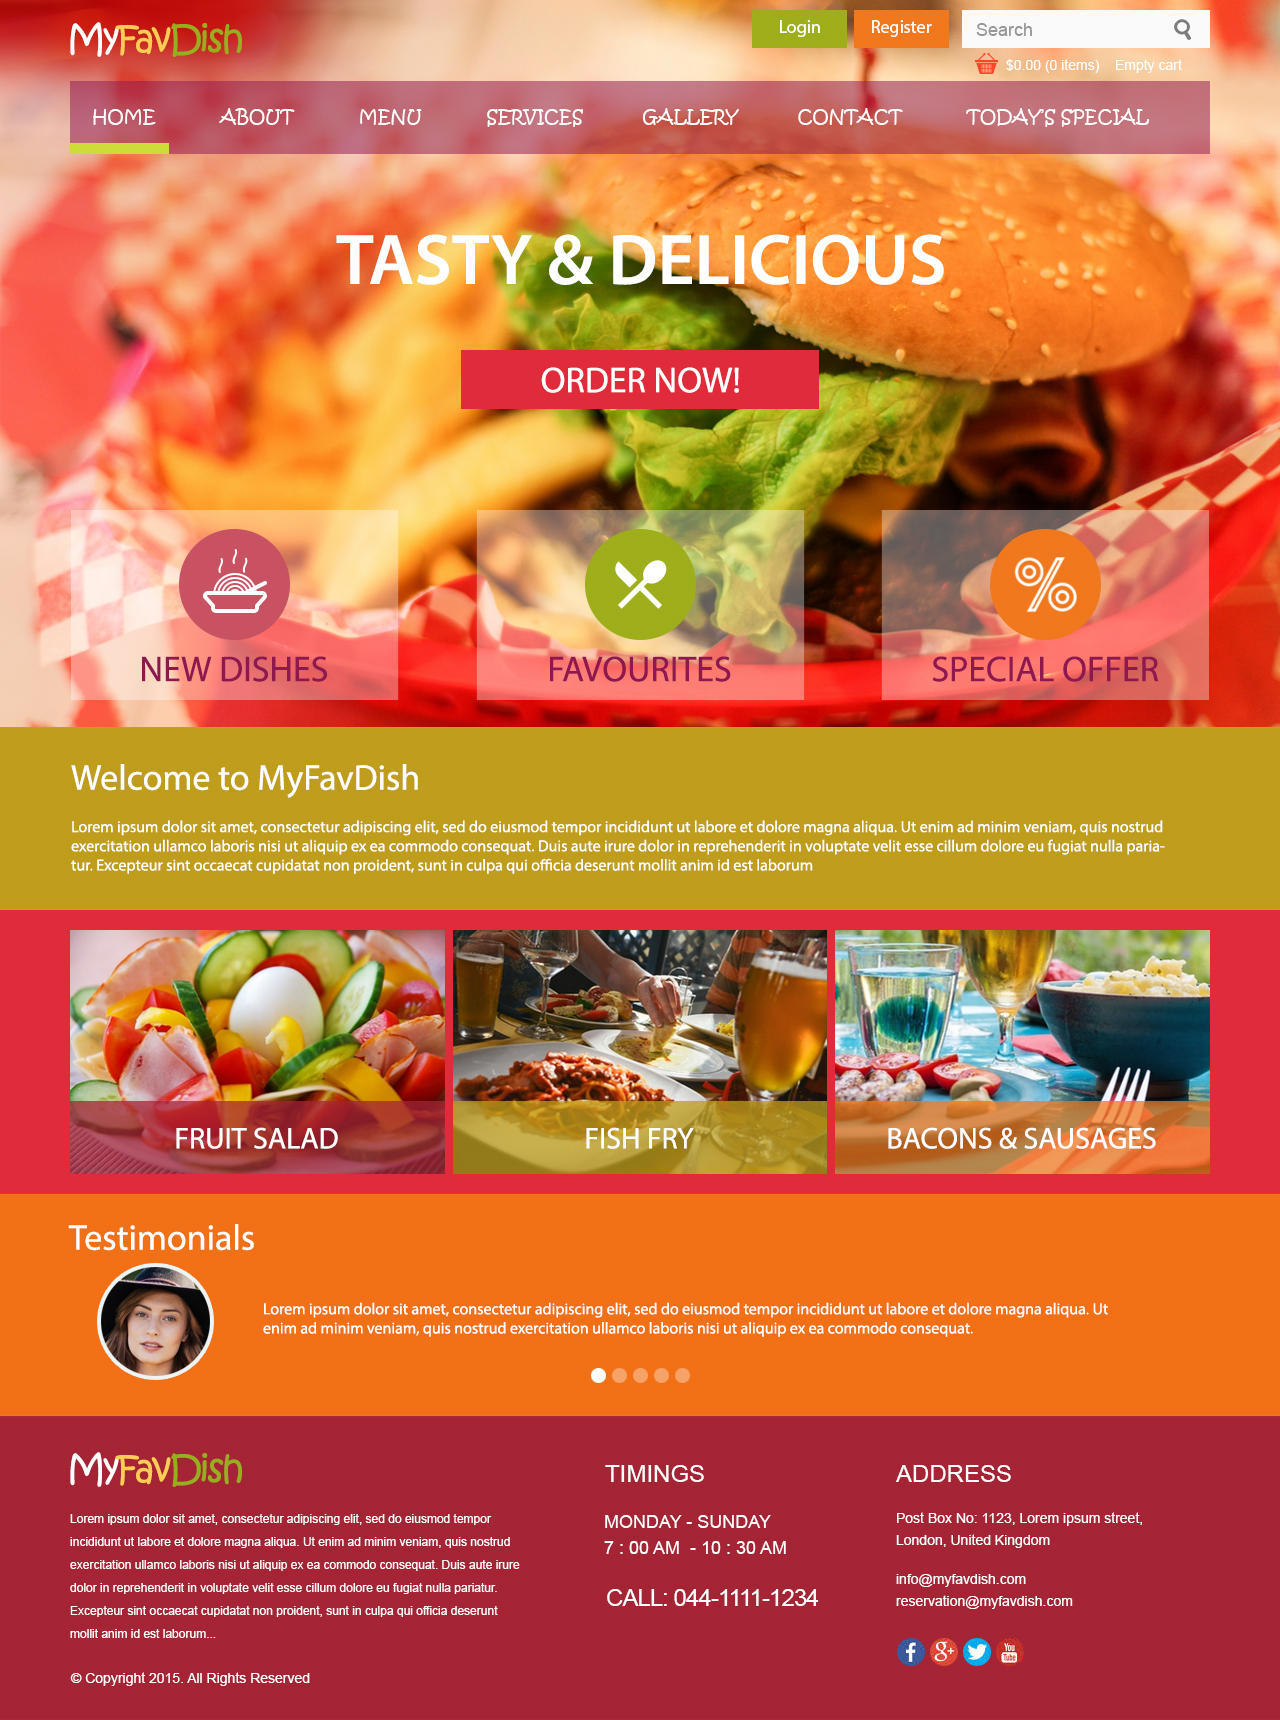 Website and Application Template Design by design_kd - 107259